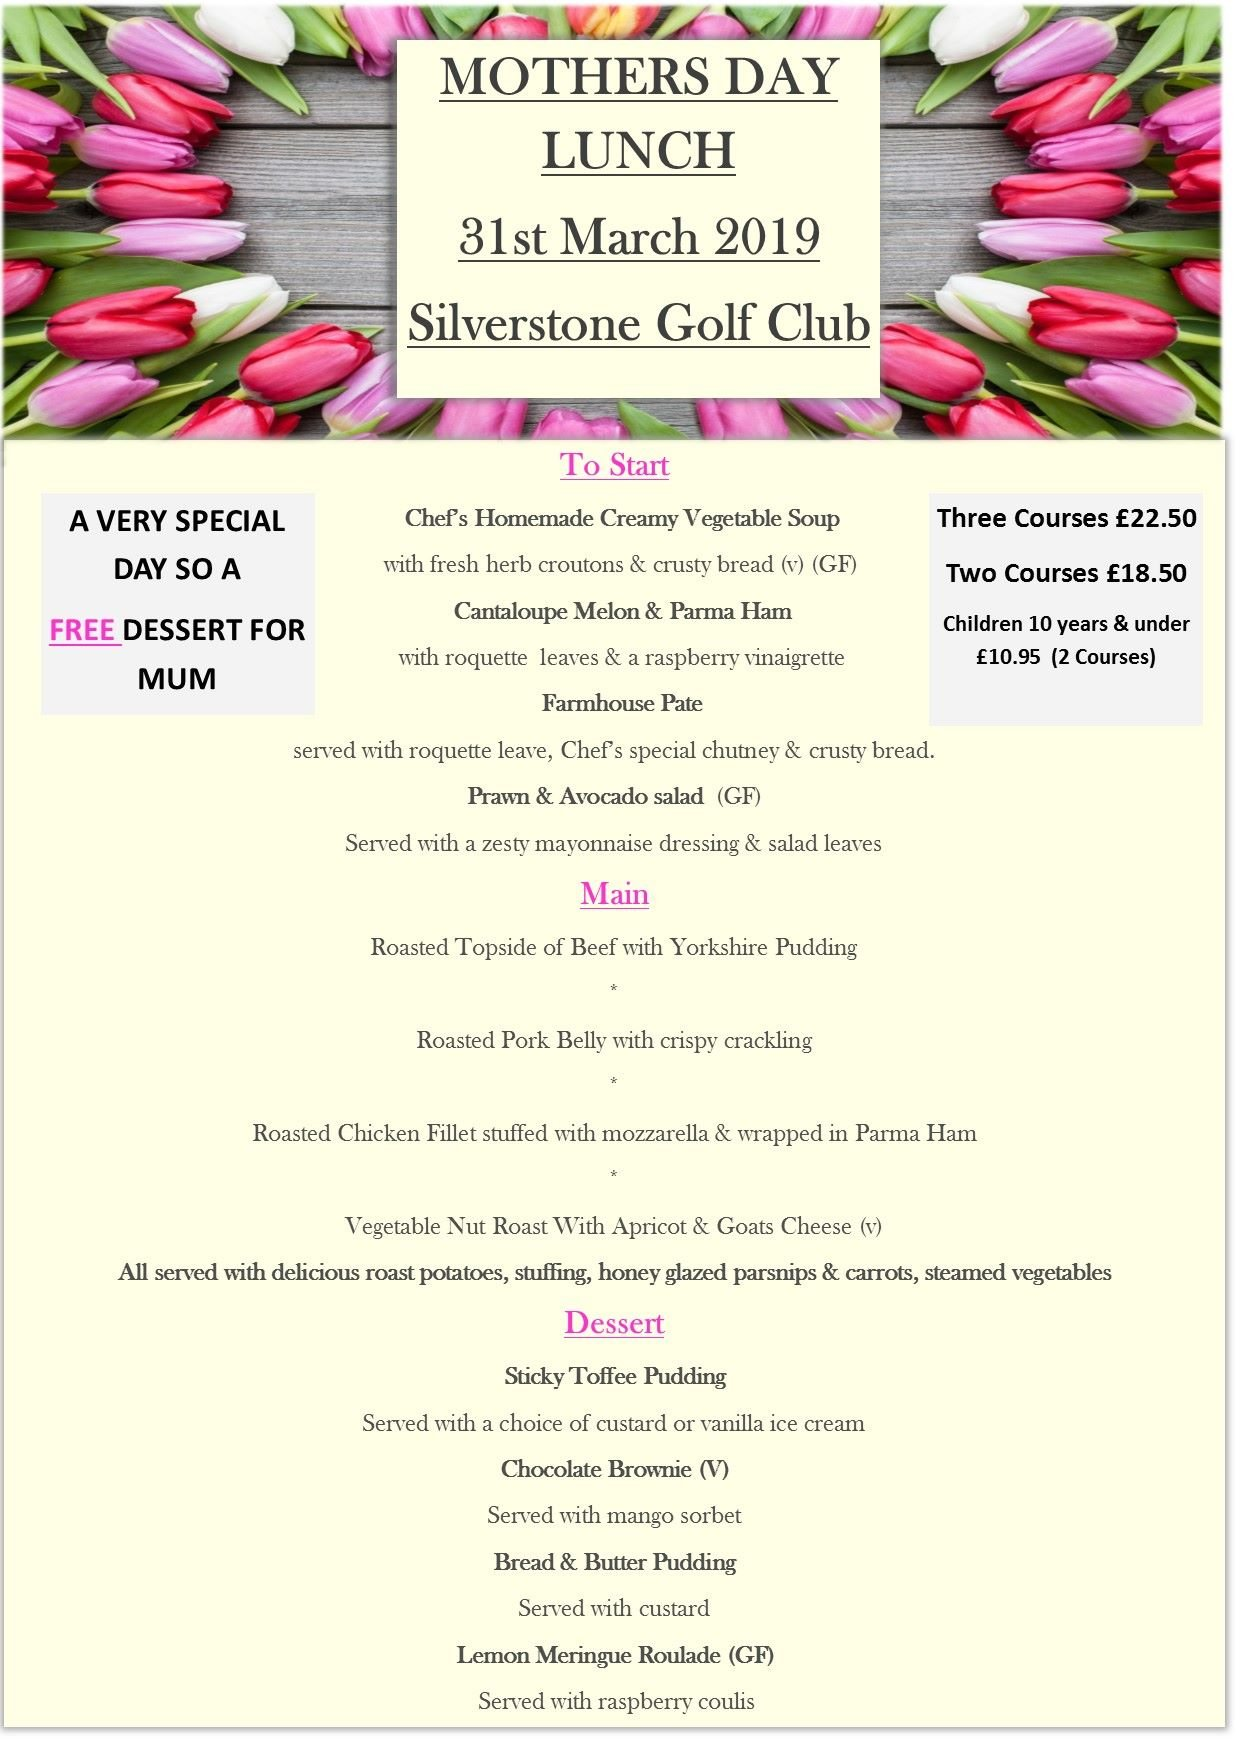 Mothers Day 2019 Silverstone Golf Club 2019